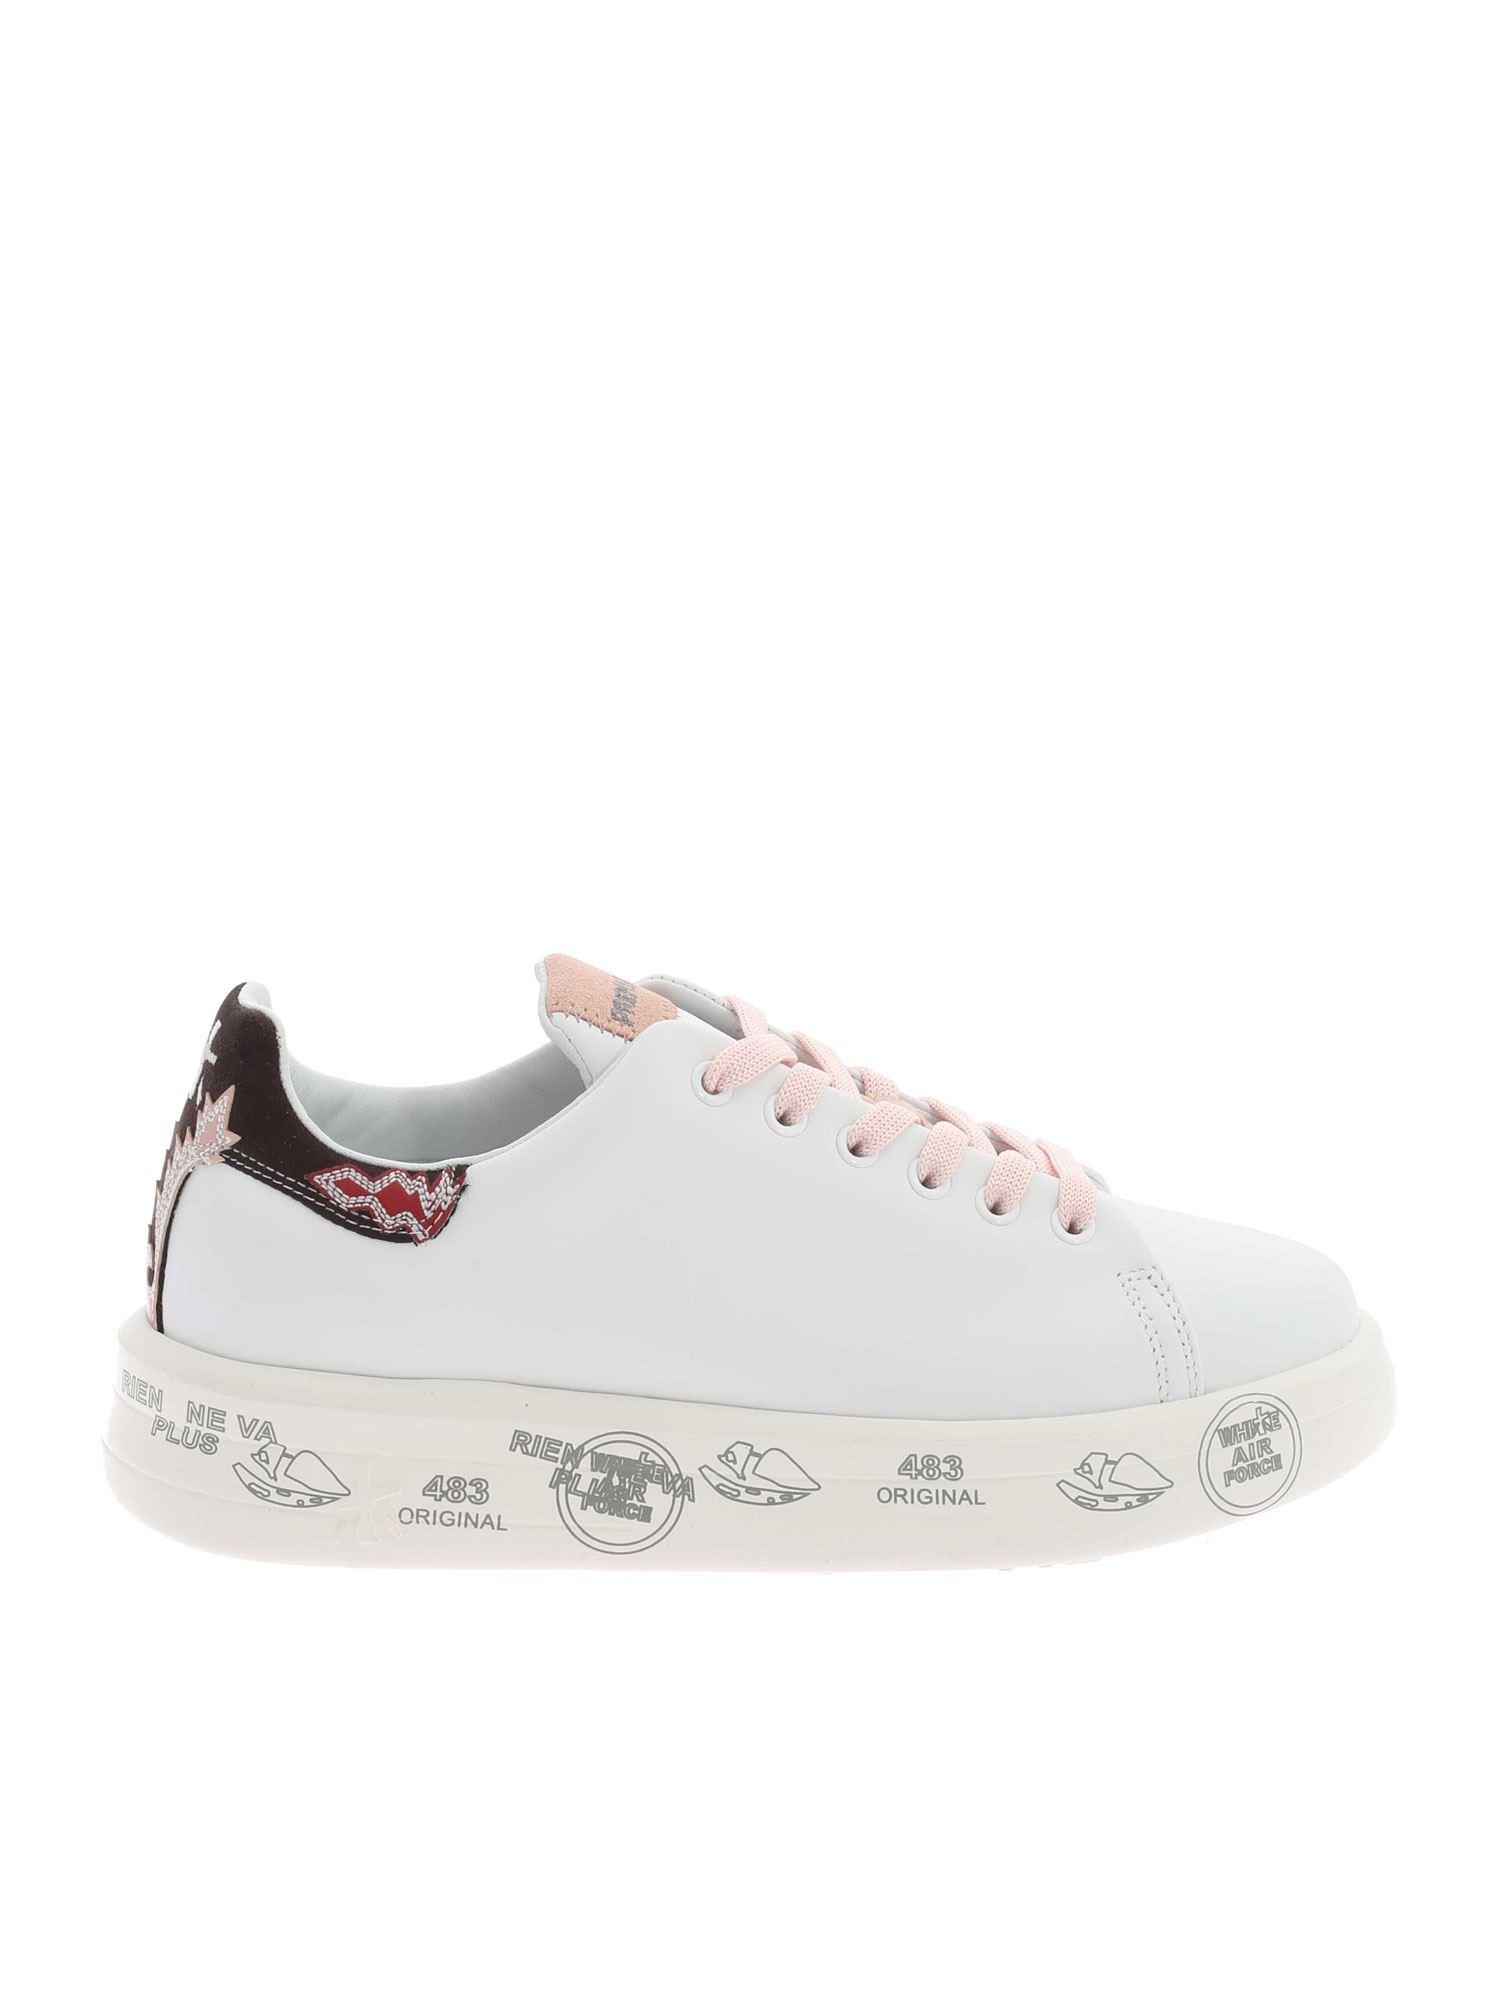 Premiata Suedes LOGO EMBROIDERY SNEAKERS IN WHITE